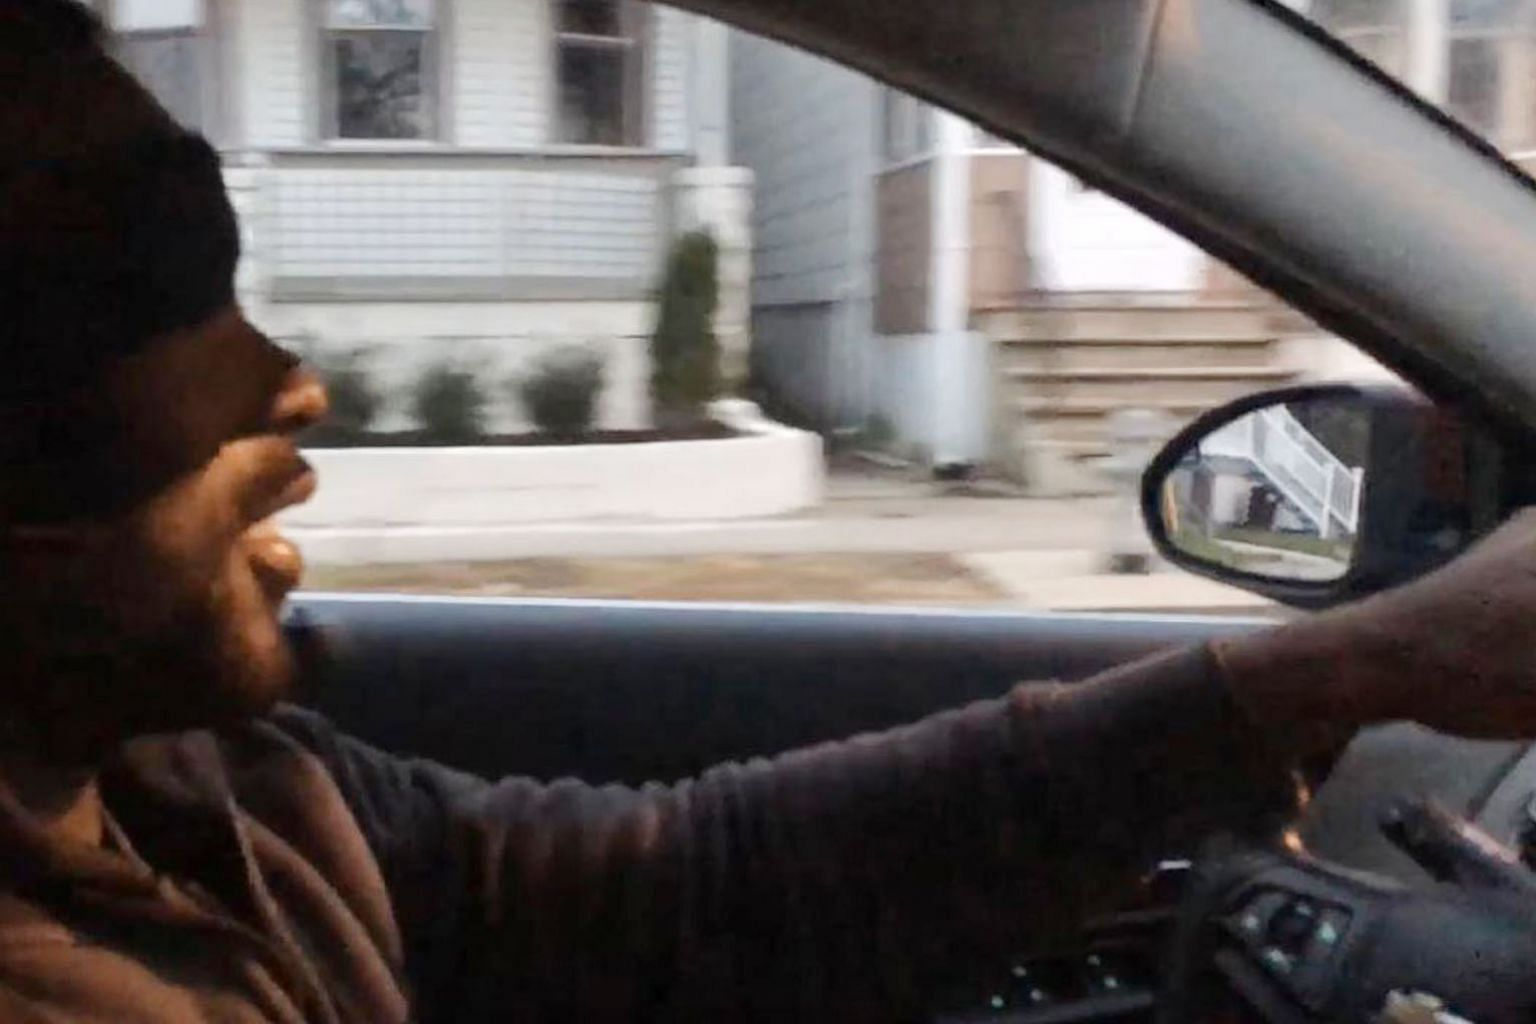 A man driving blindfolded for the Bird Box challenge. Netflix has warned fans against participating in the potentially dangerous online challenge inspired by its recent horror film, where survivors of a post-apocalyptic America must wear blindfolds t